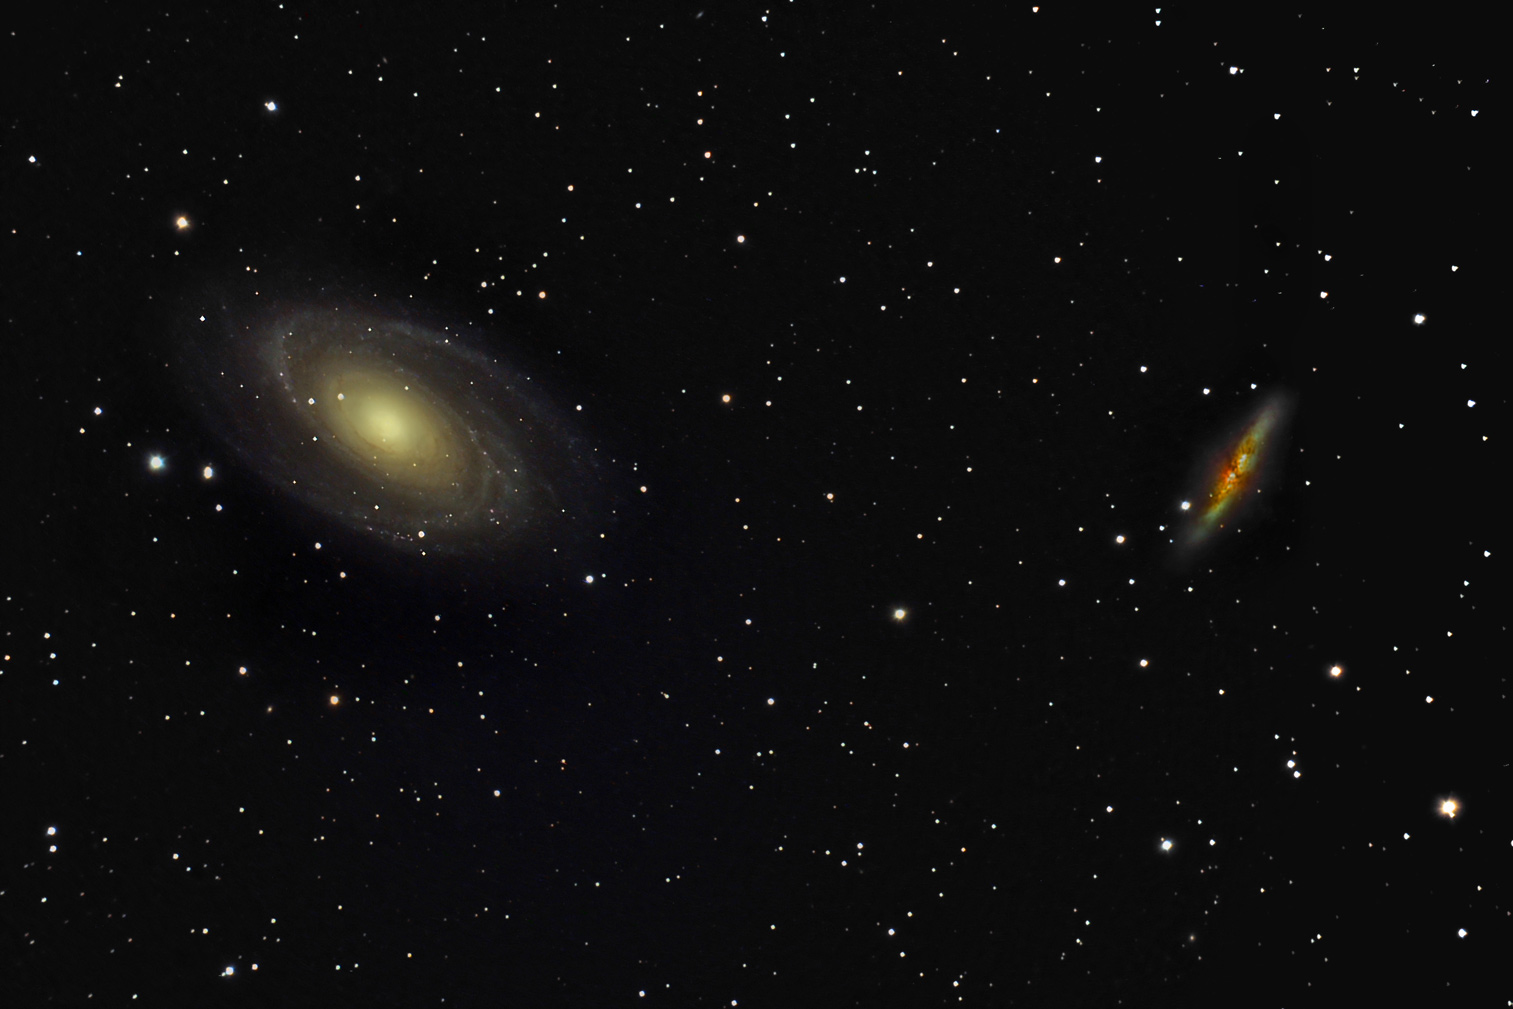 M81 (left) and M82 (right) in Ursa Major: Credti: Wikimedia Commons